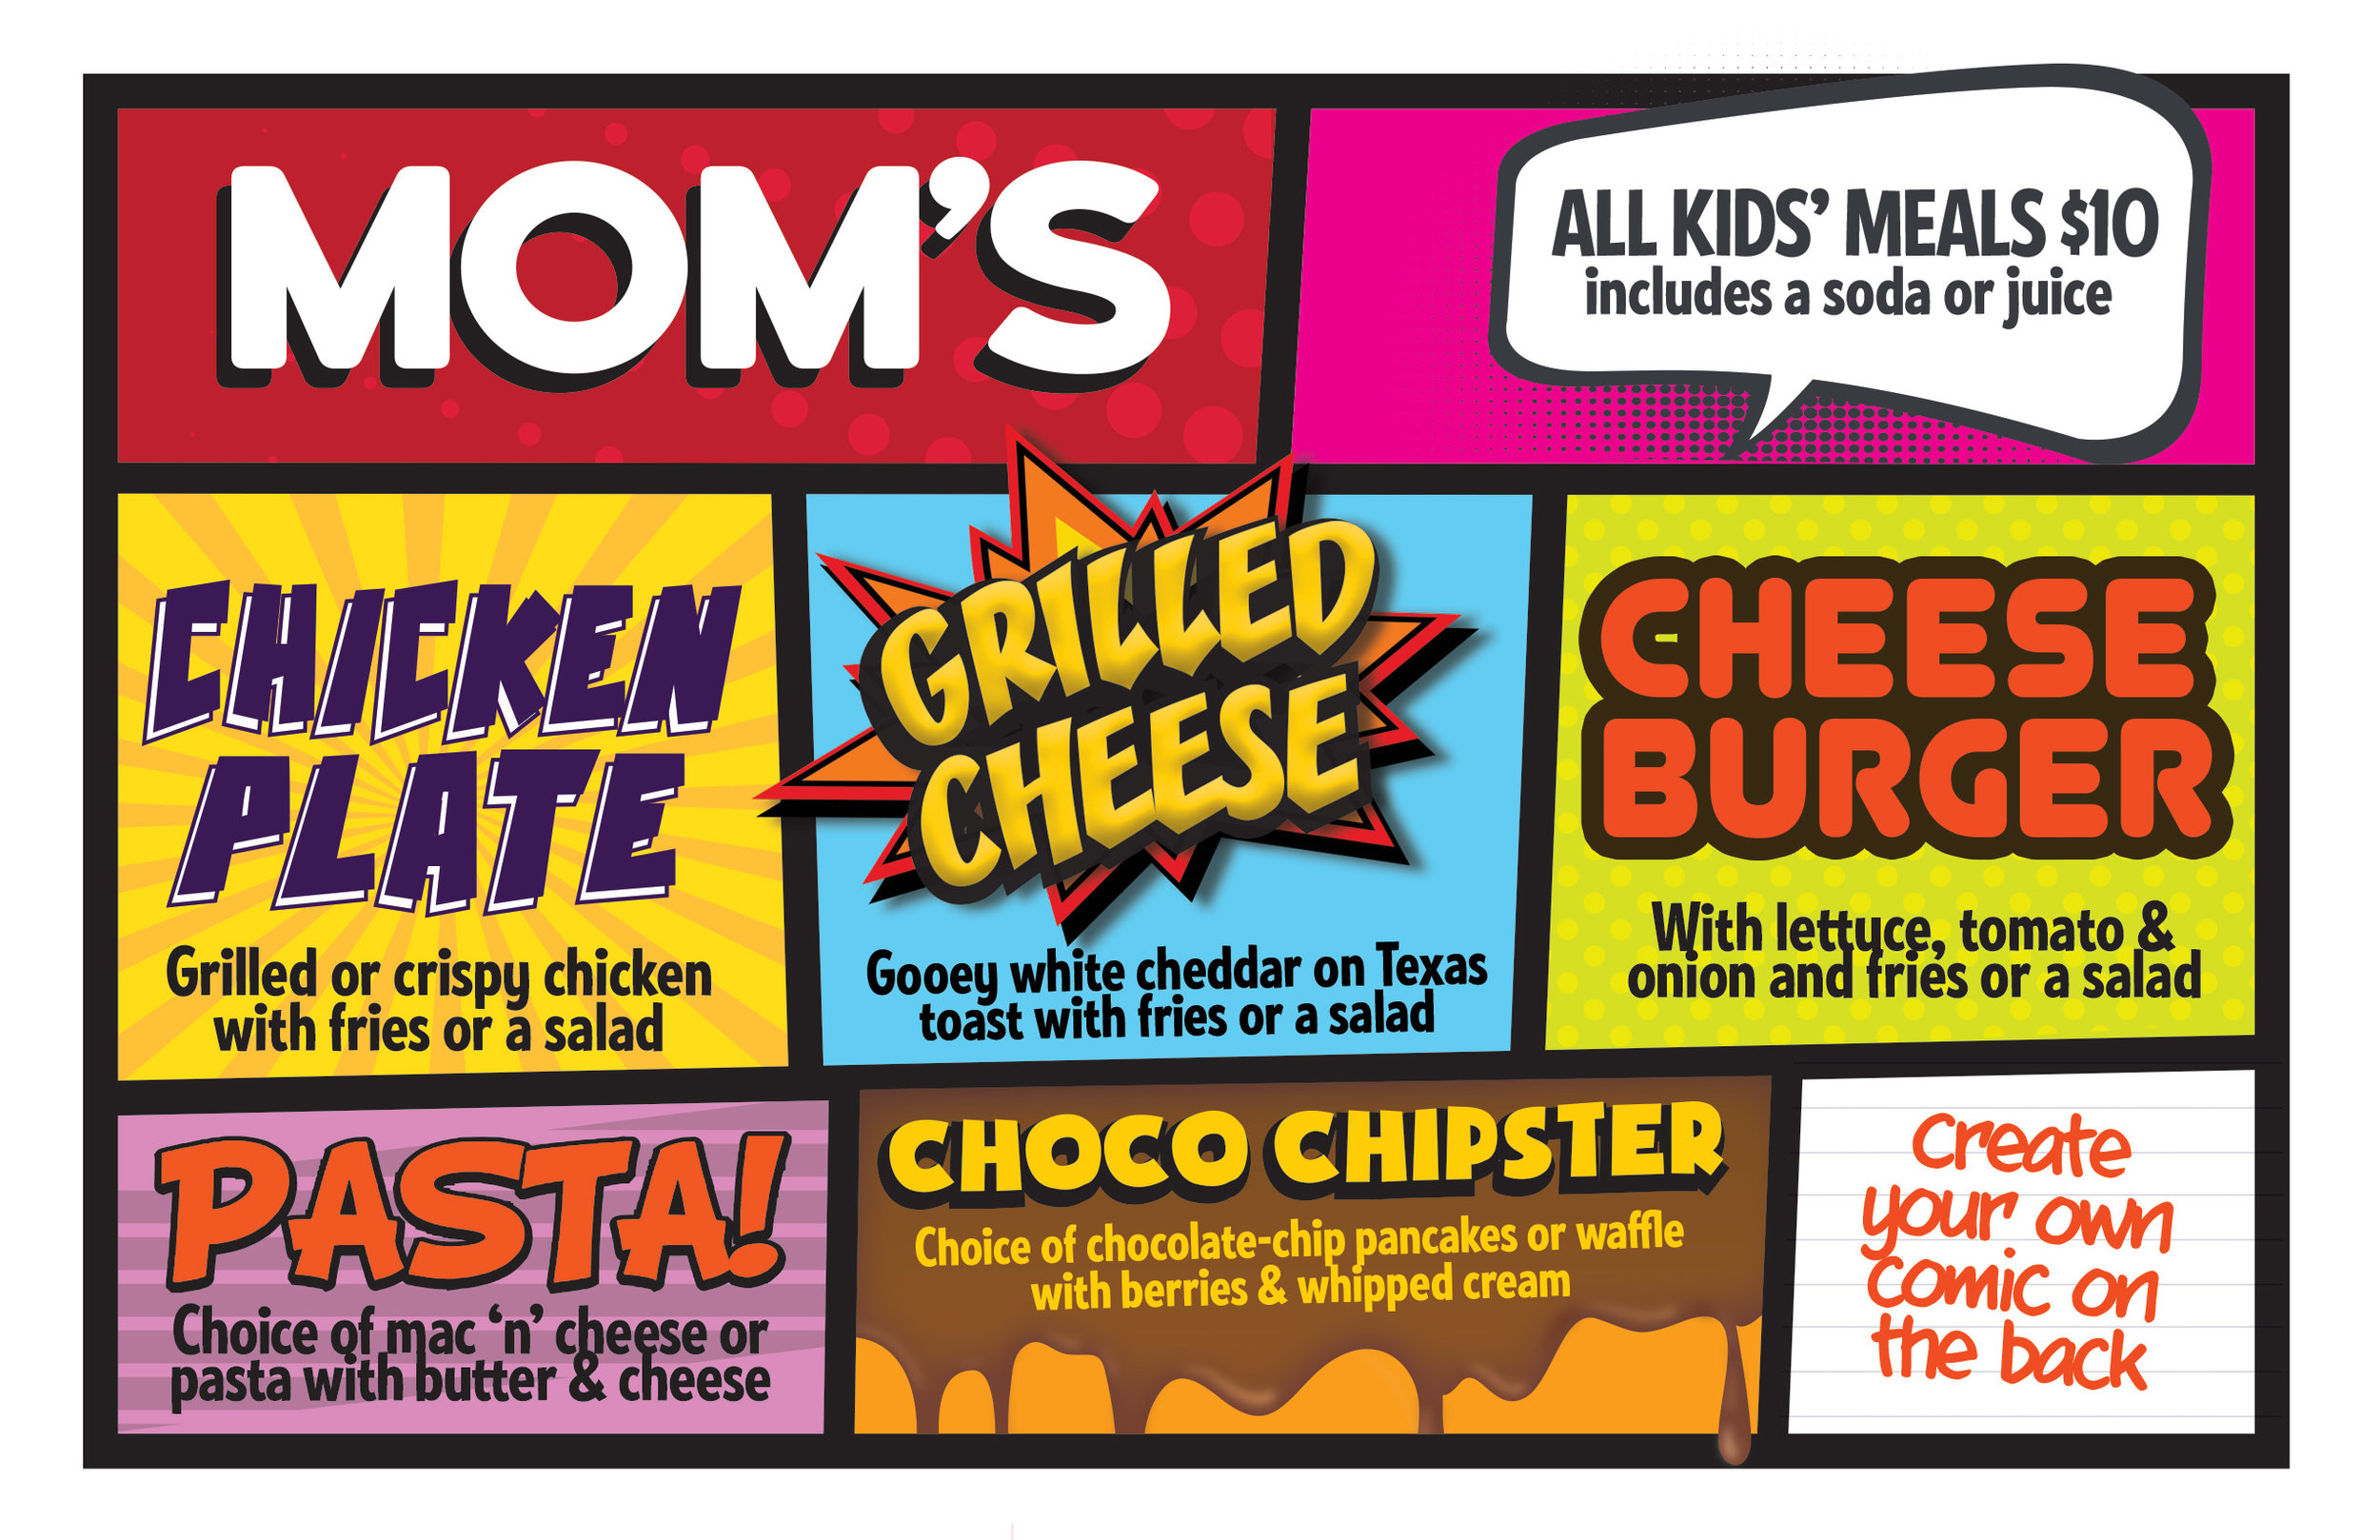 moms-kids-menu-nov-2017-10.jpgkid friendly restaurant nyc times square midtown